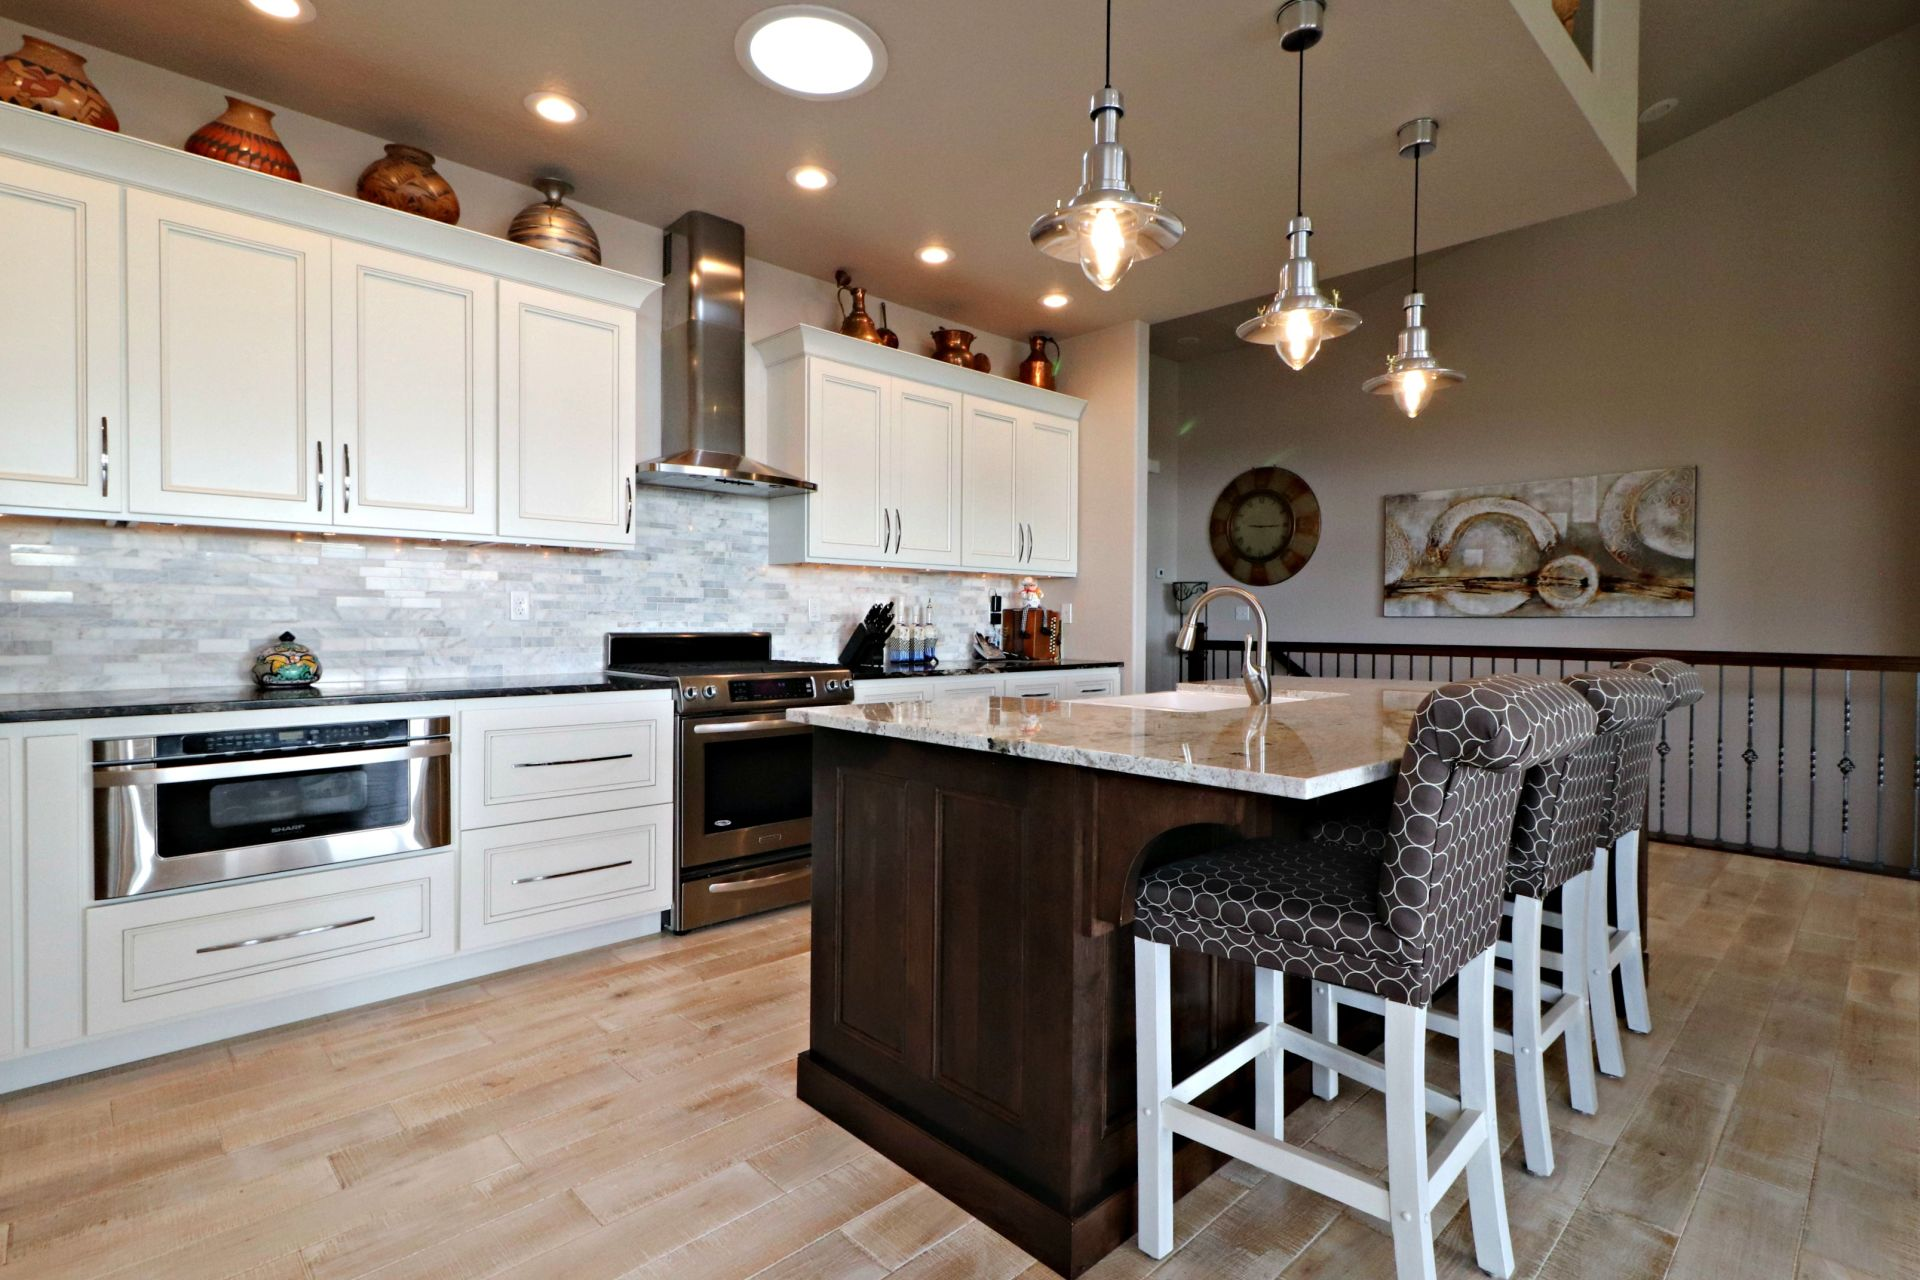 Incredible Town Home Overlooking Rapid City!